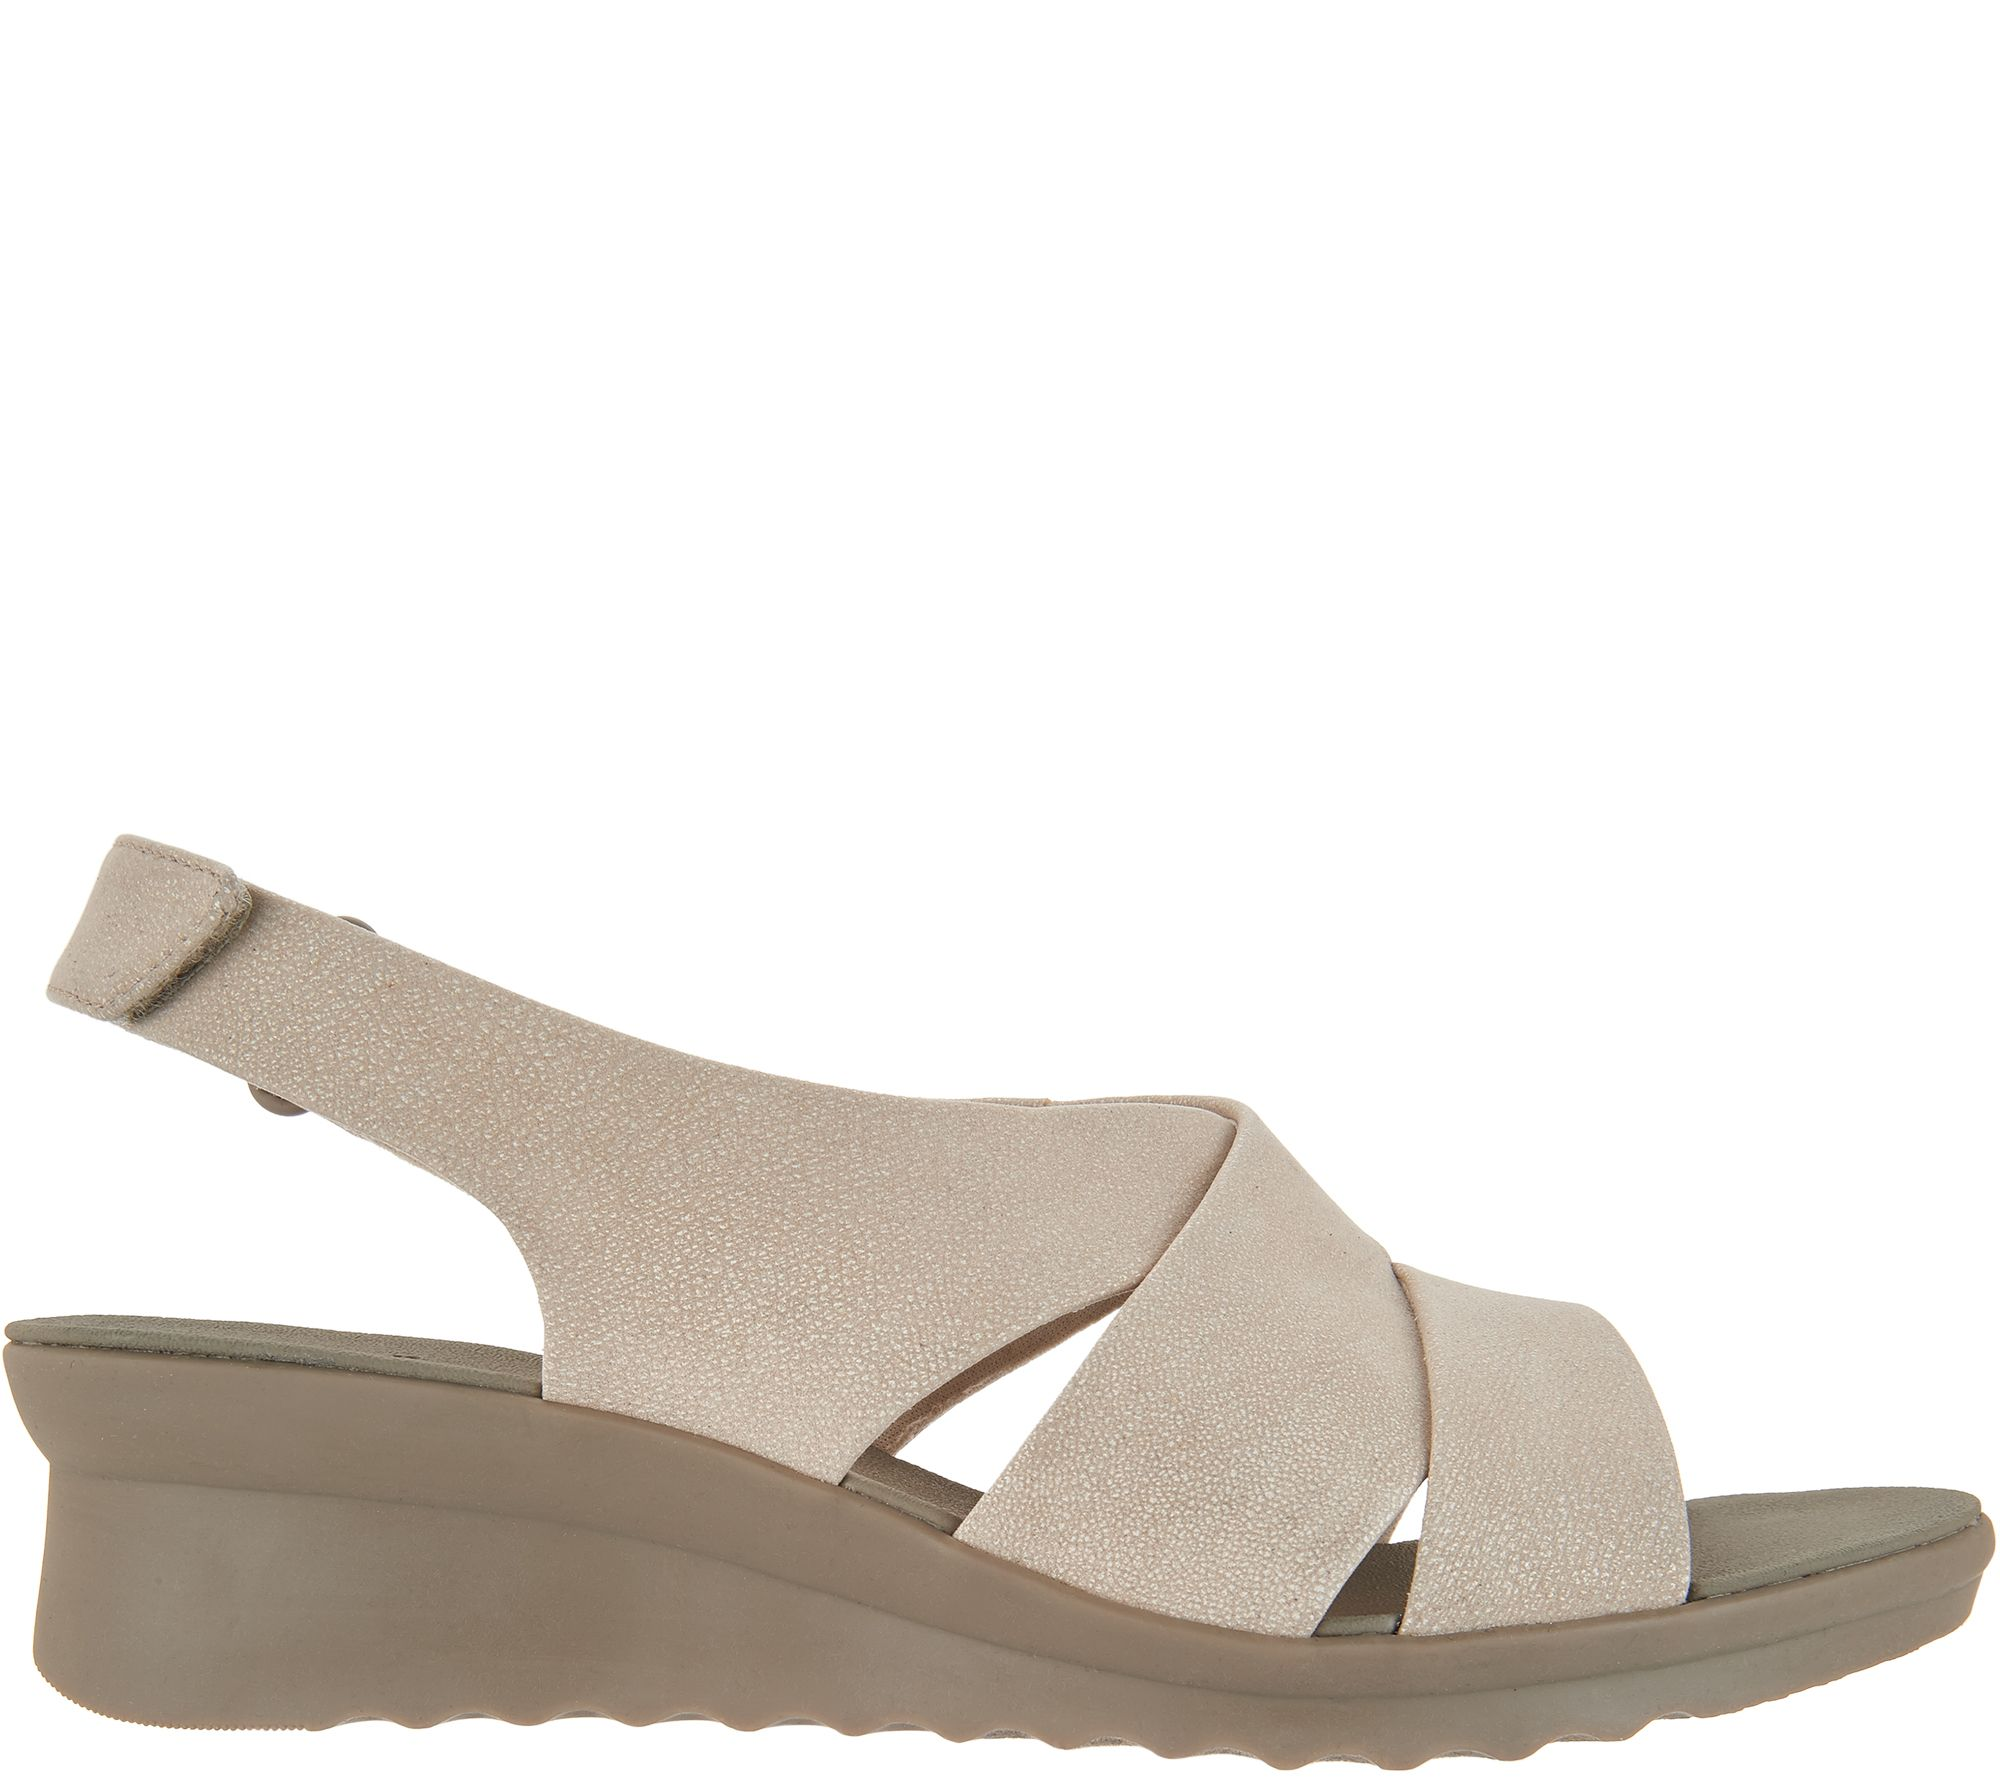 d2f07d3c8e86 CLOUDSTEPPERS by Clarks Wedge Sandals - Caddell Bright - Page 1 — QVC.com